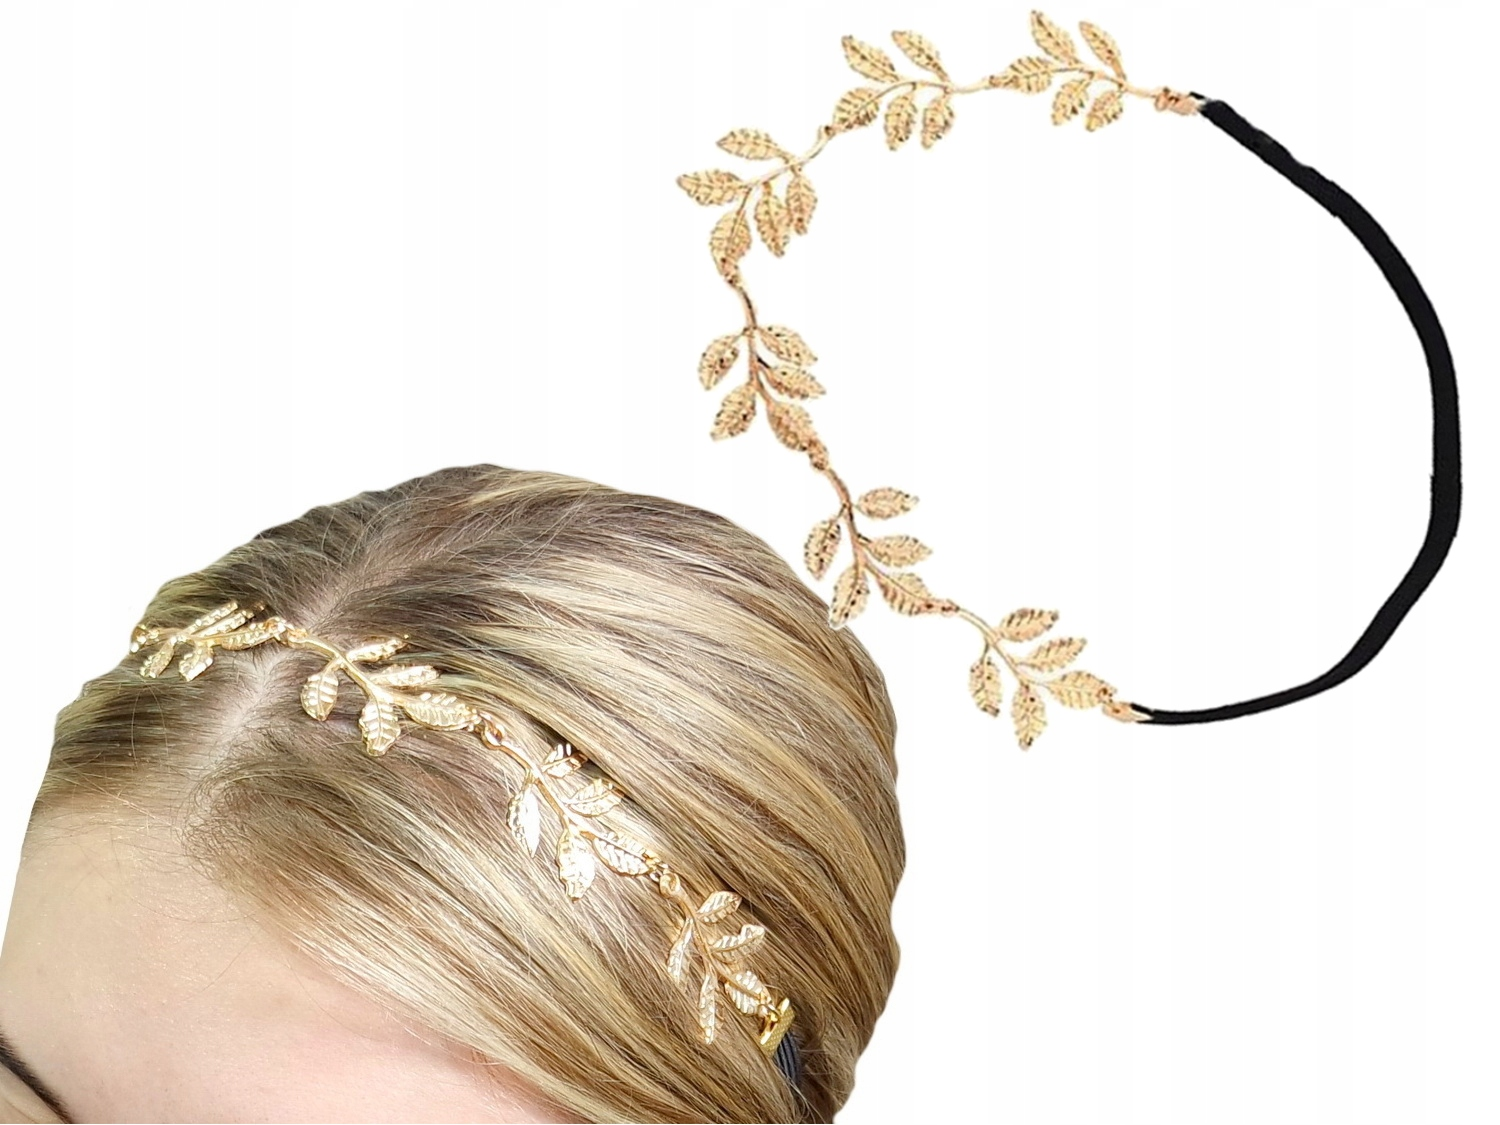 Item M73 Headband with GOLD Elastic LEAVES, a Sprig